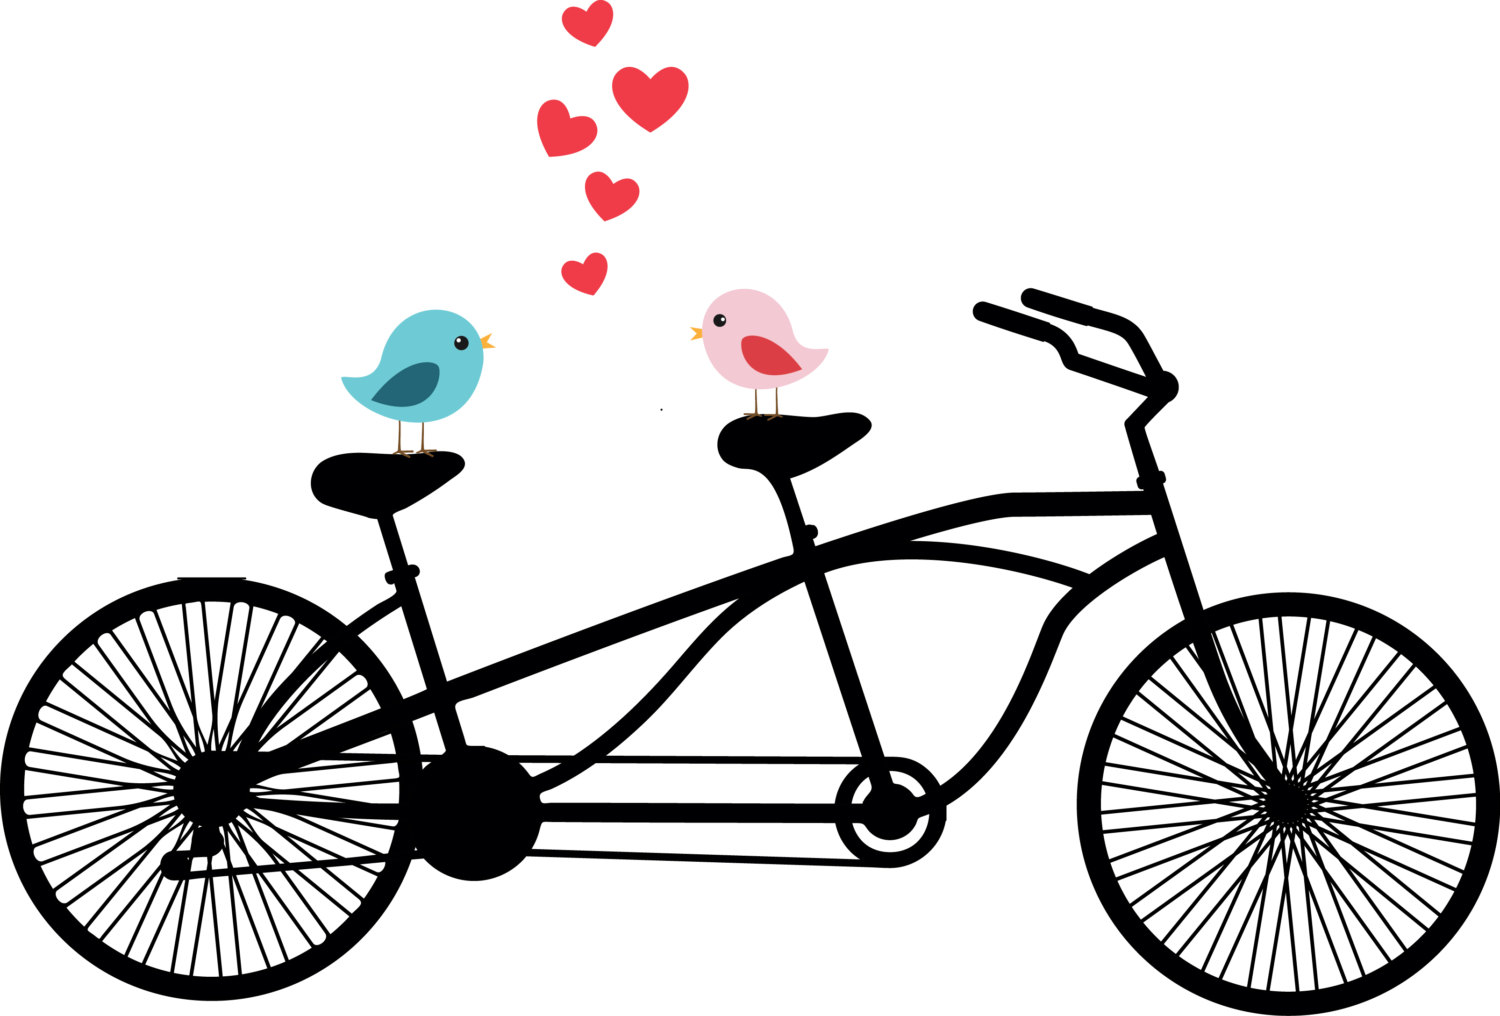 Biking clipart wedding. Tandem bicycle love birds